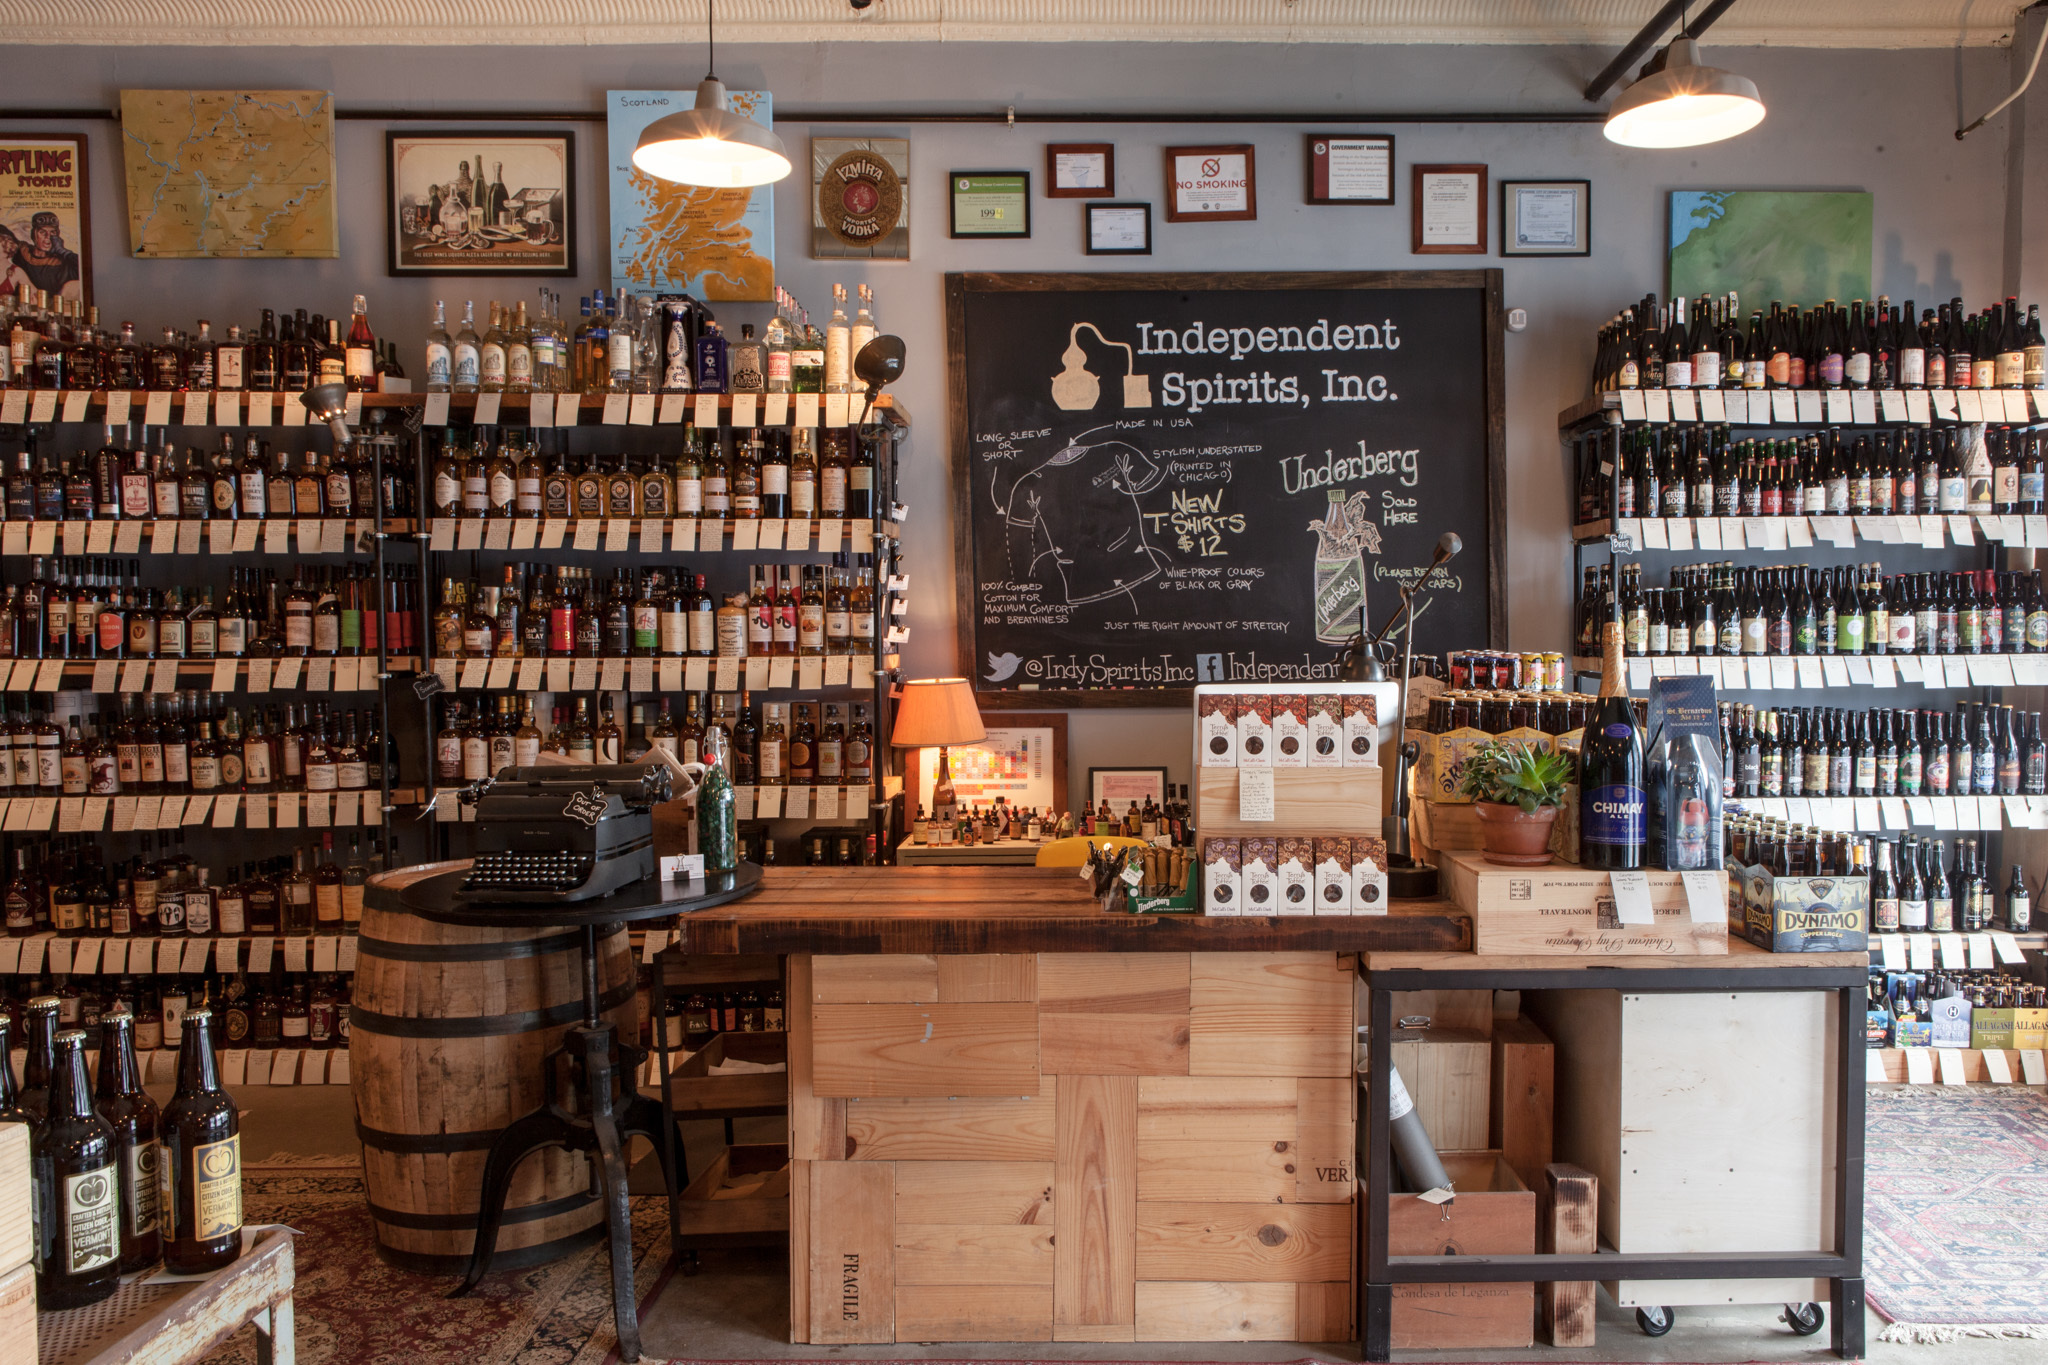 Best liquor stores in chicago for beer wine and spirits Wine shop decoration